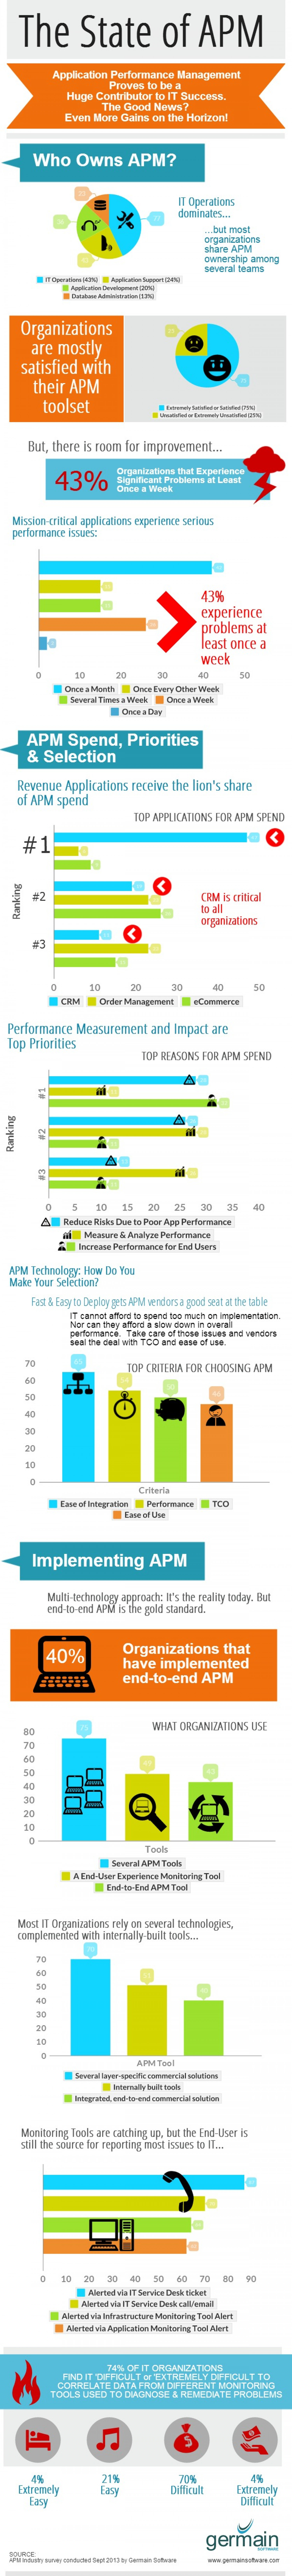 The State of APM Infographic